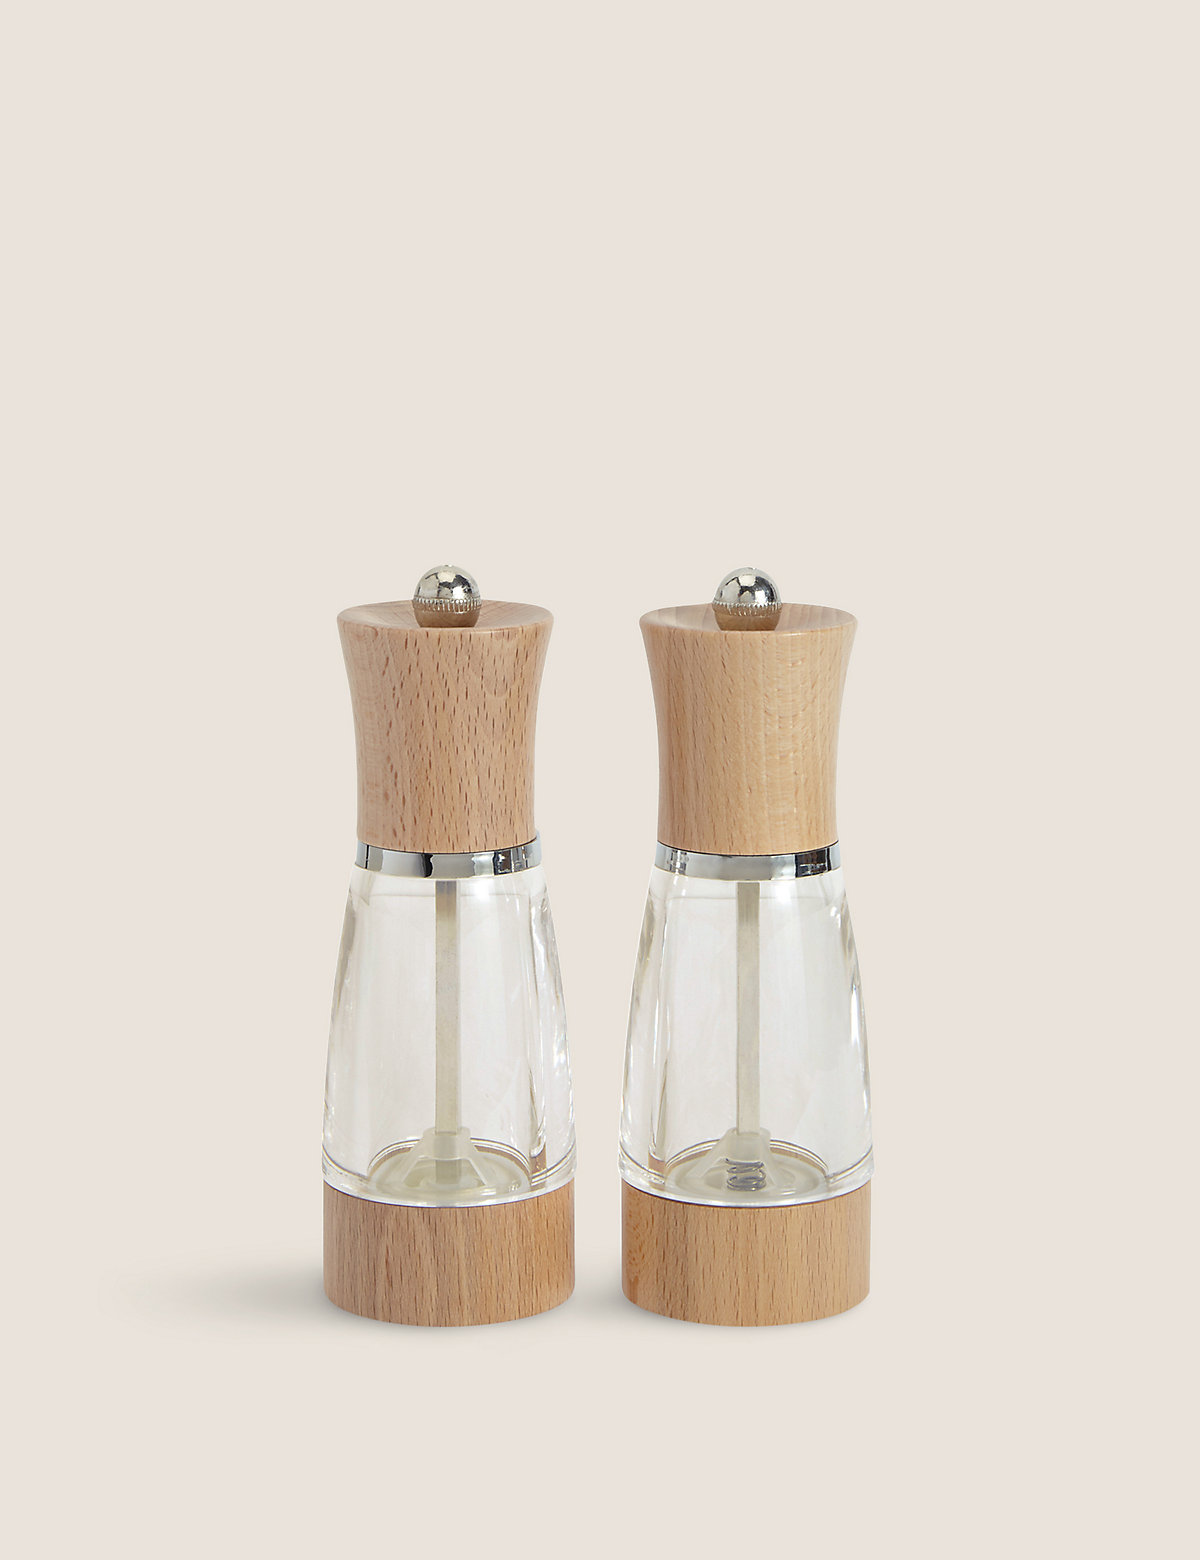 2 Warwick Salt & Pepper Mills.